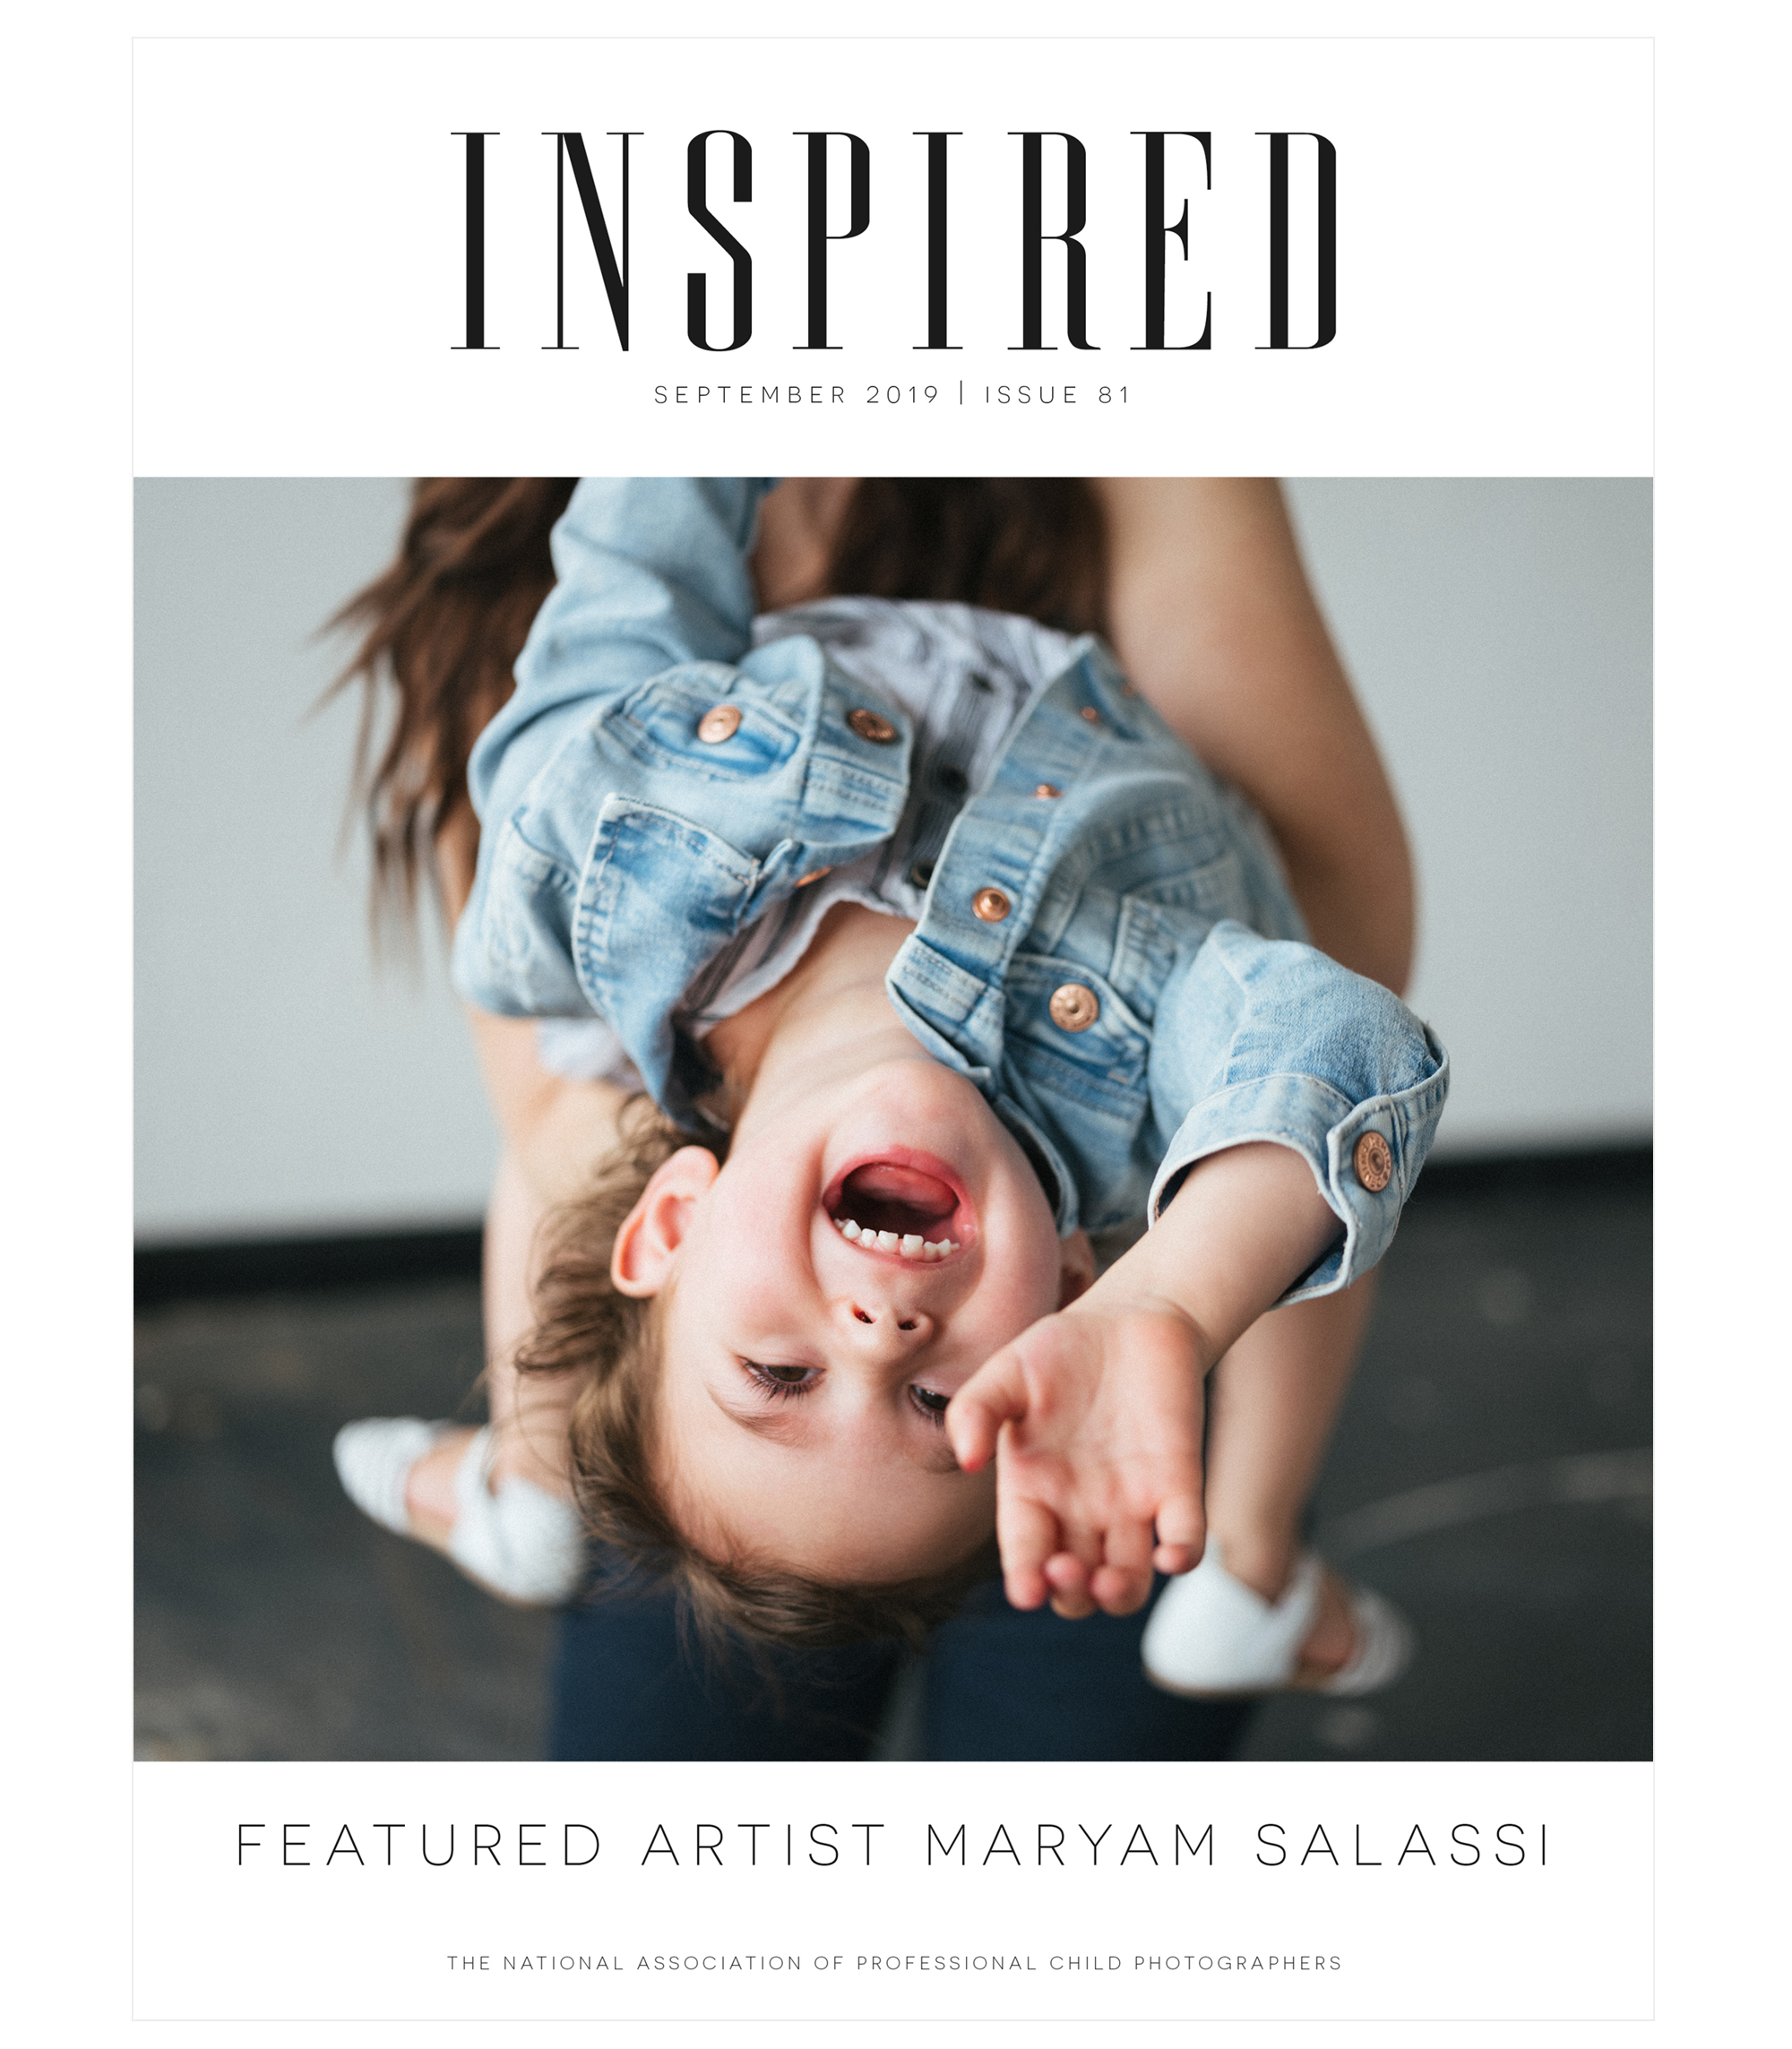 Inspired September 2019 Issue 81 Featured Artist Maryam Salassi